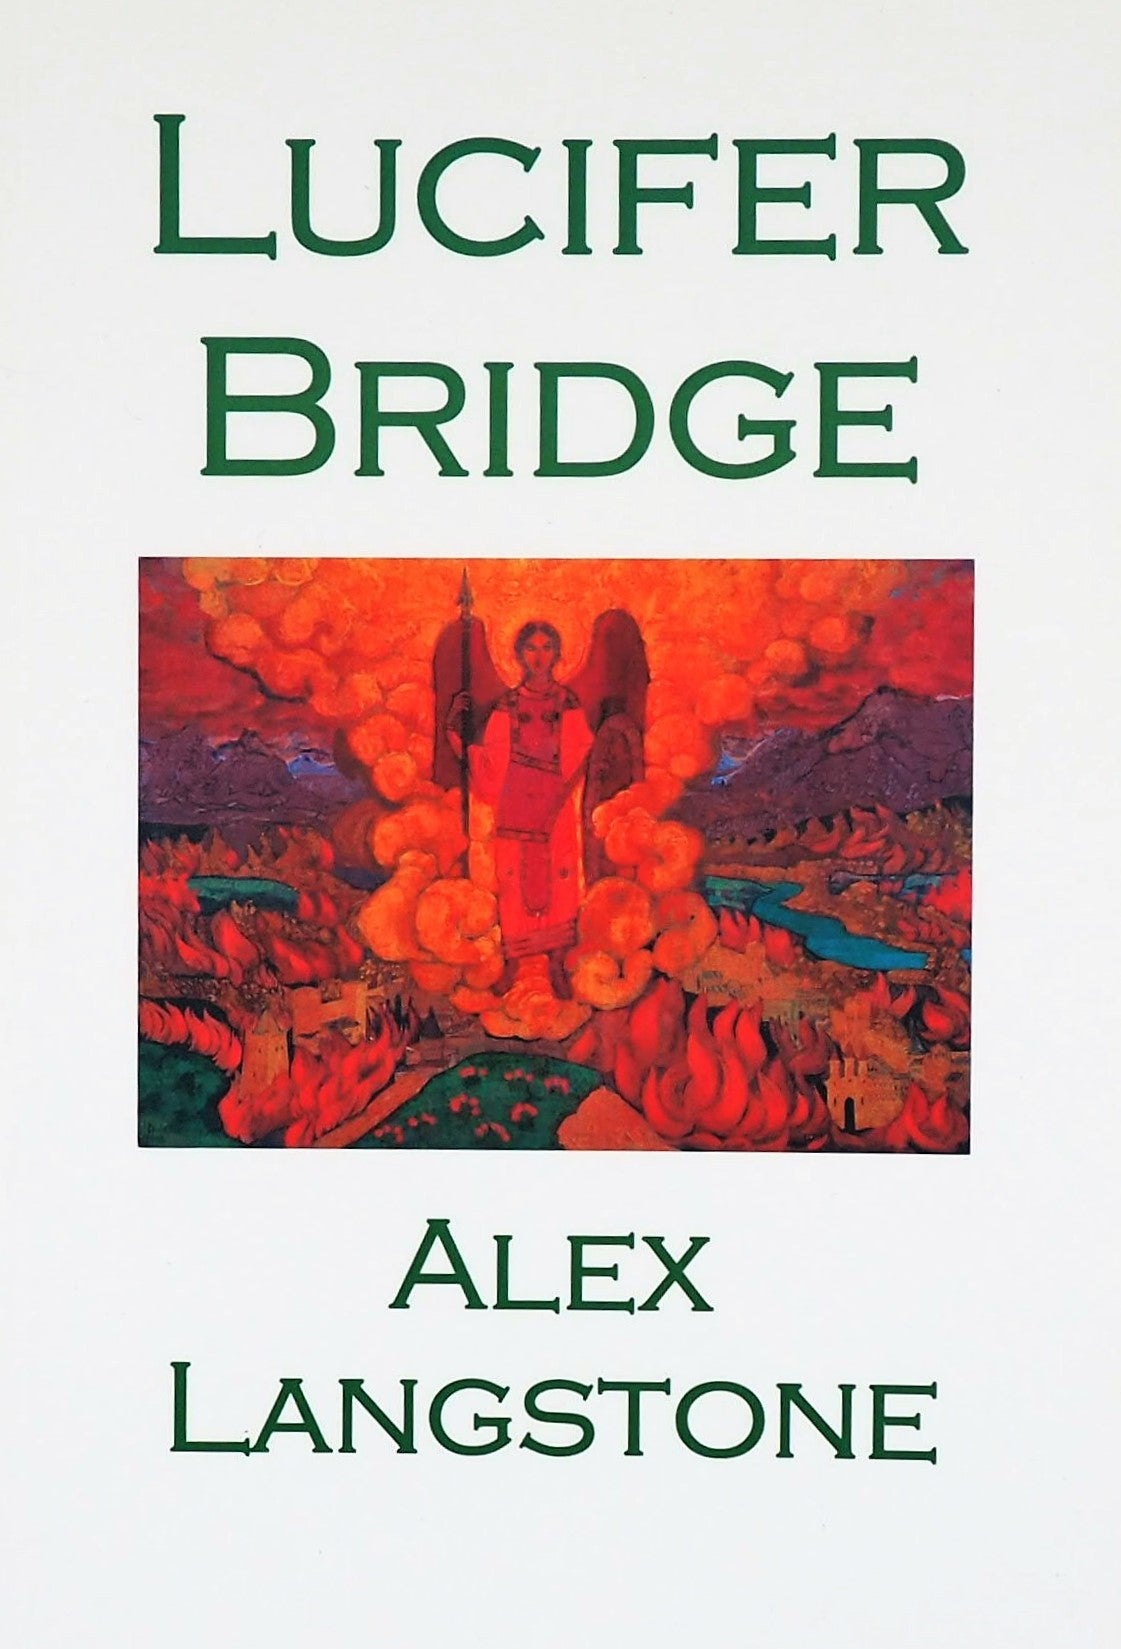 Image of Lucifer Bridge (signed by author)